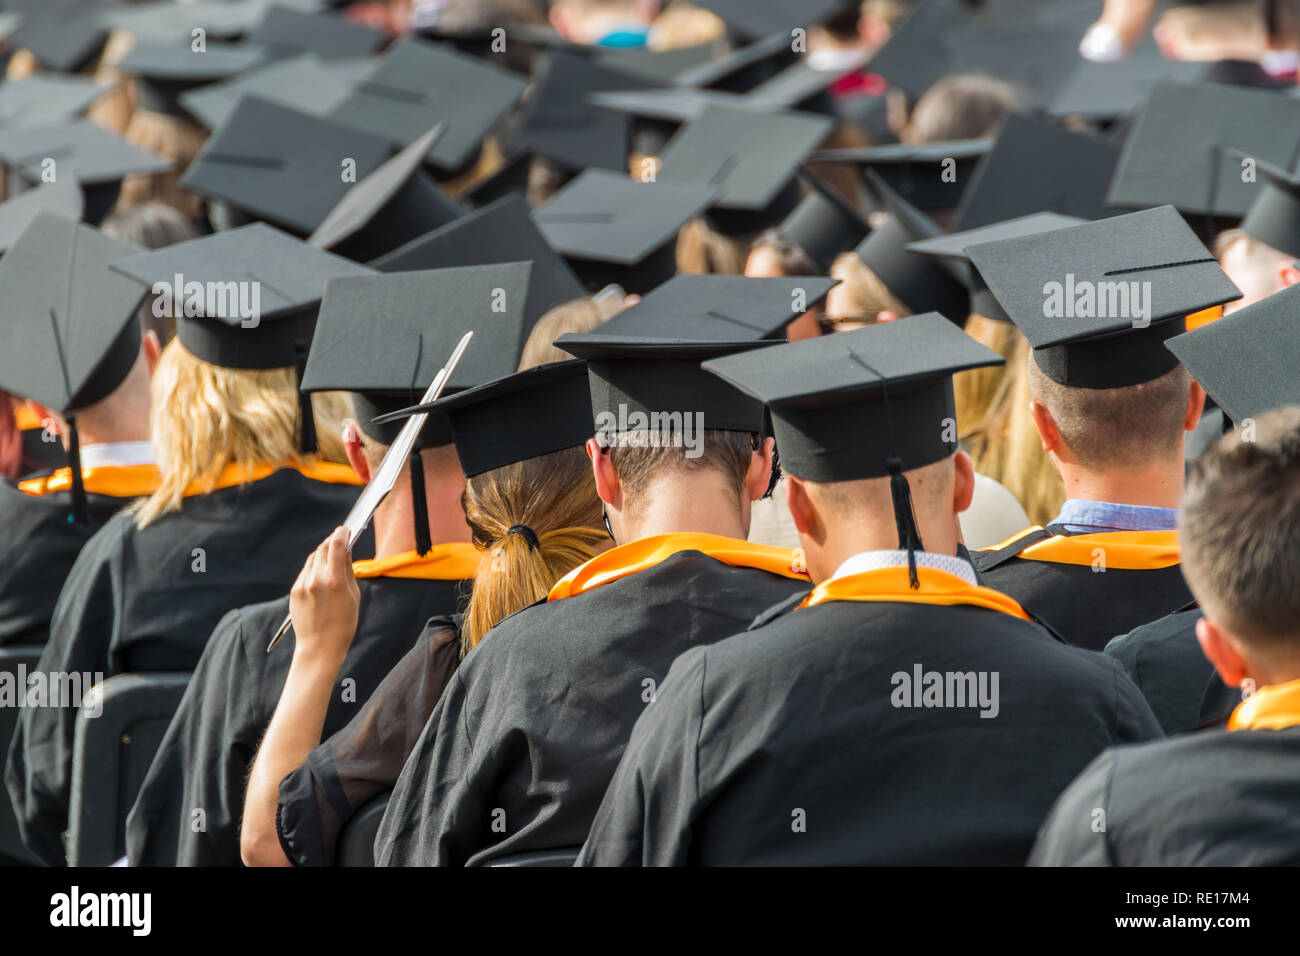 Yong student wearing graduation caps at a graduation ceremony. - Stock Image